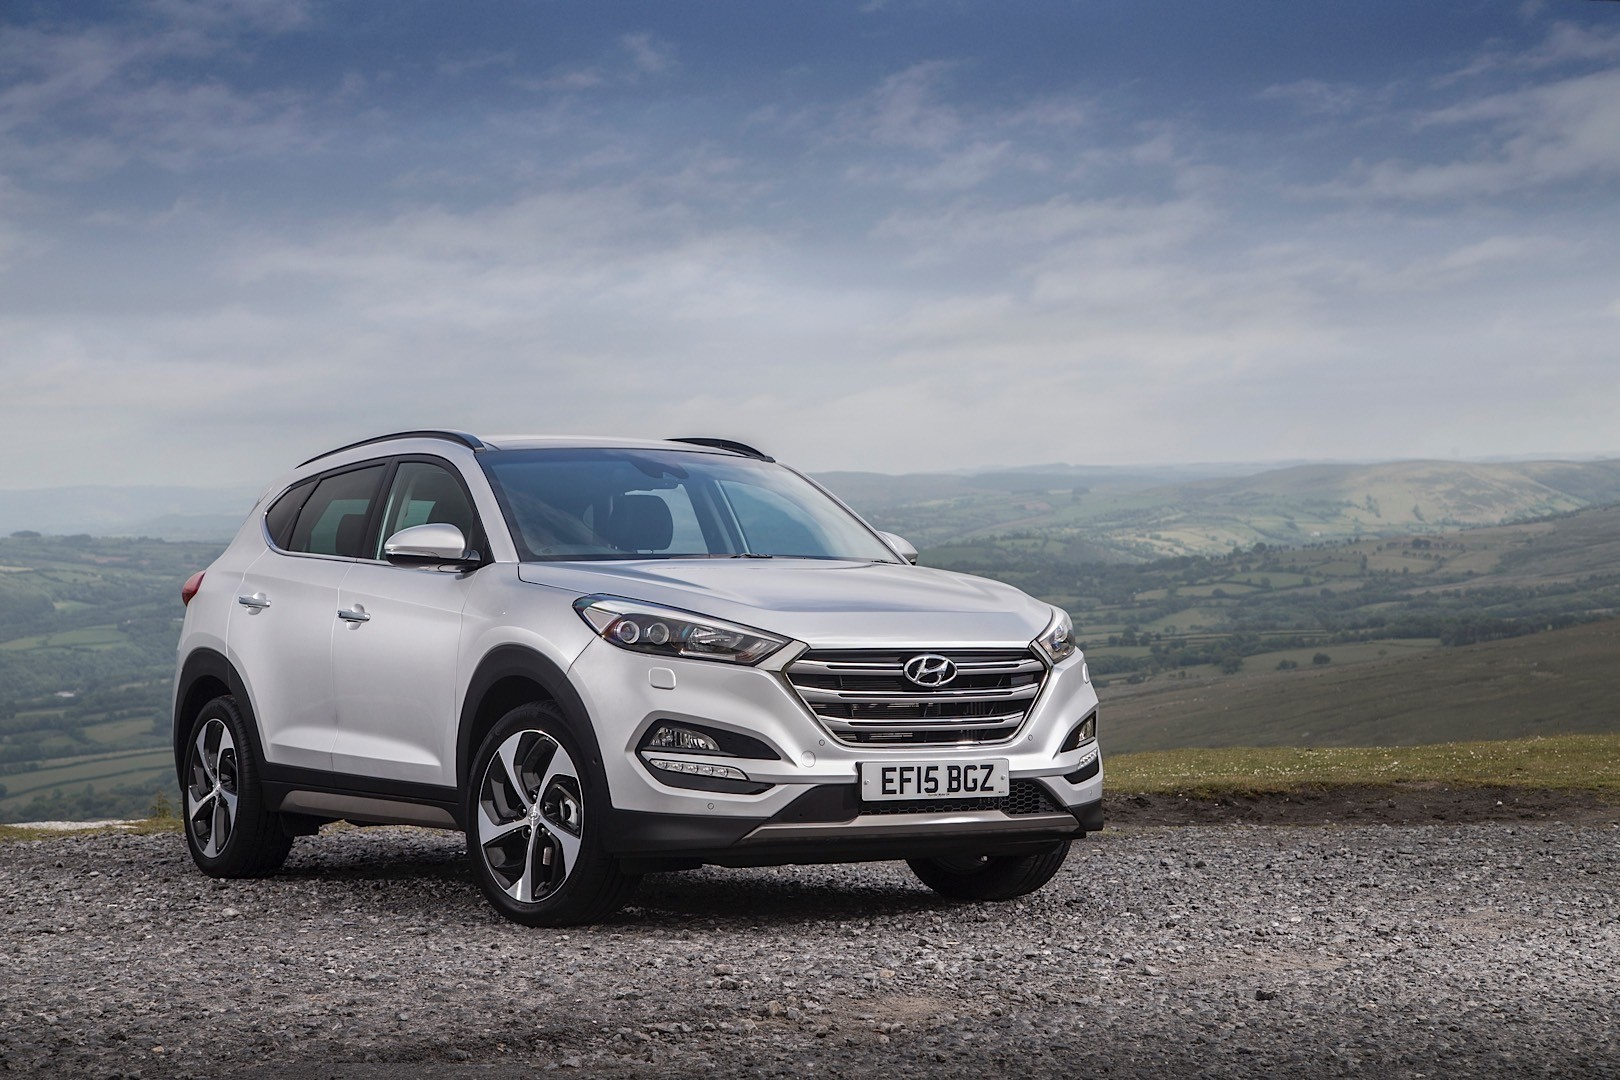 2016 Hyundai Tucson UK Pricing Info Revealed SUV Bill